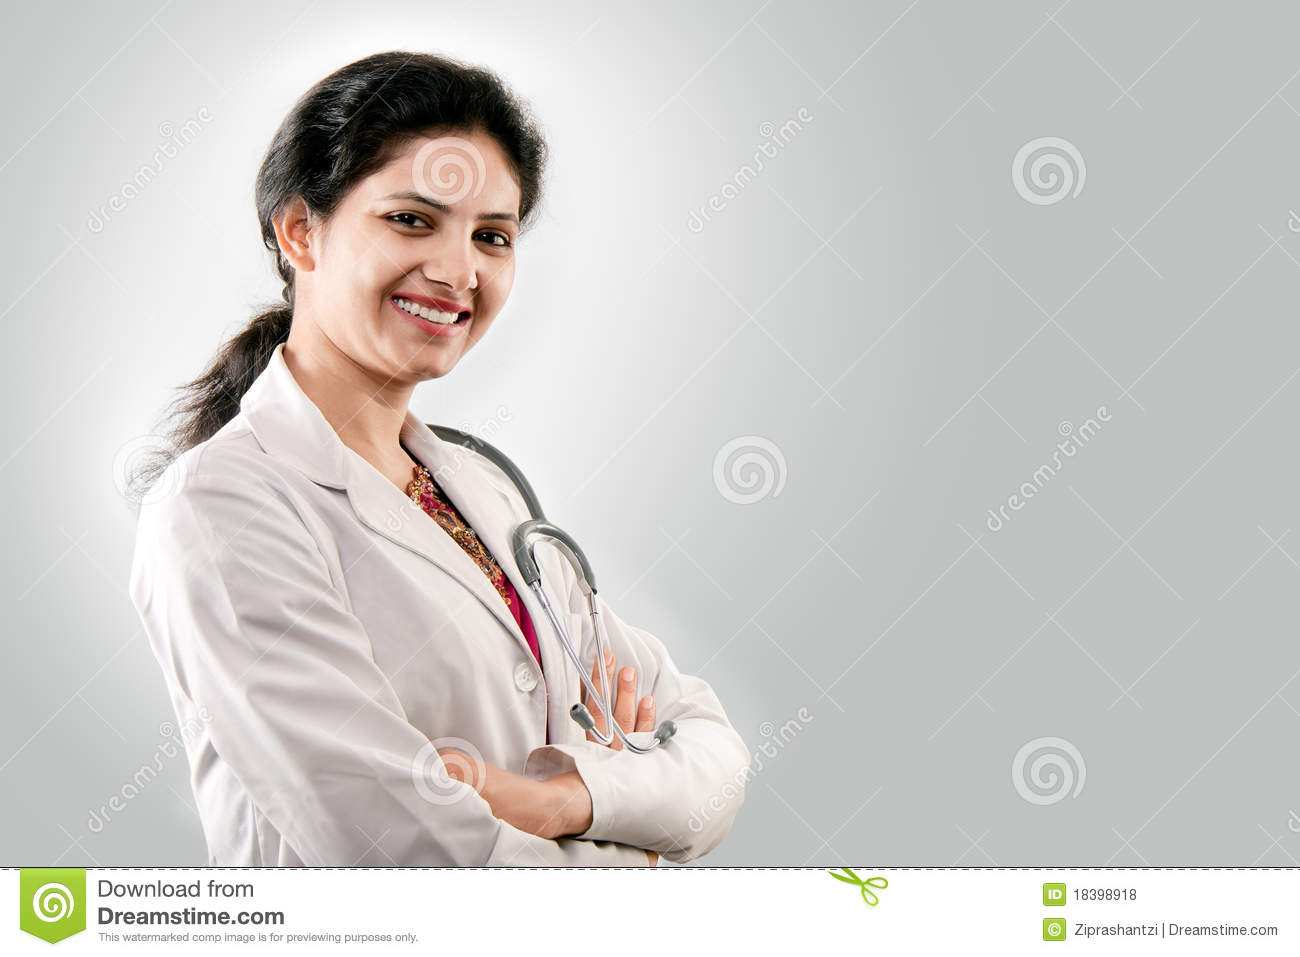 indian beautiful female doctor stock images - 1,376 photos